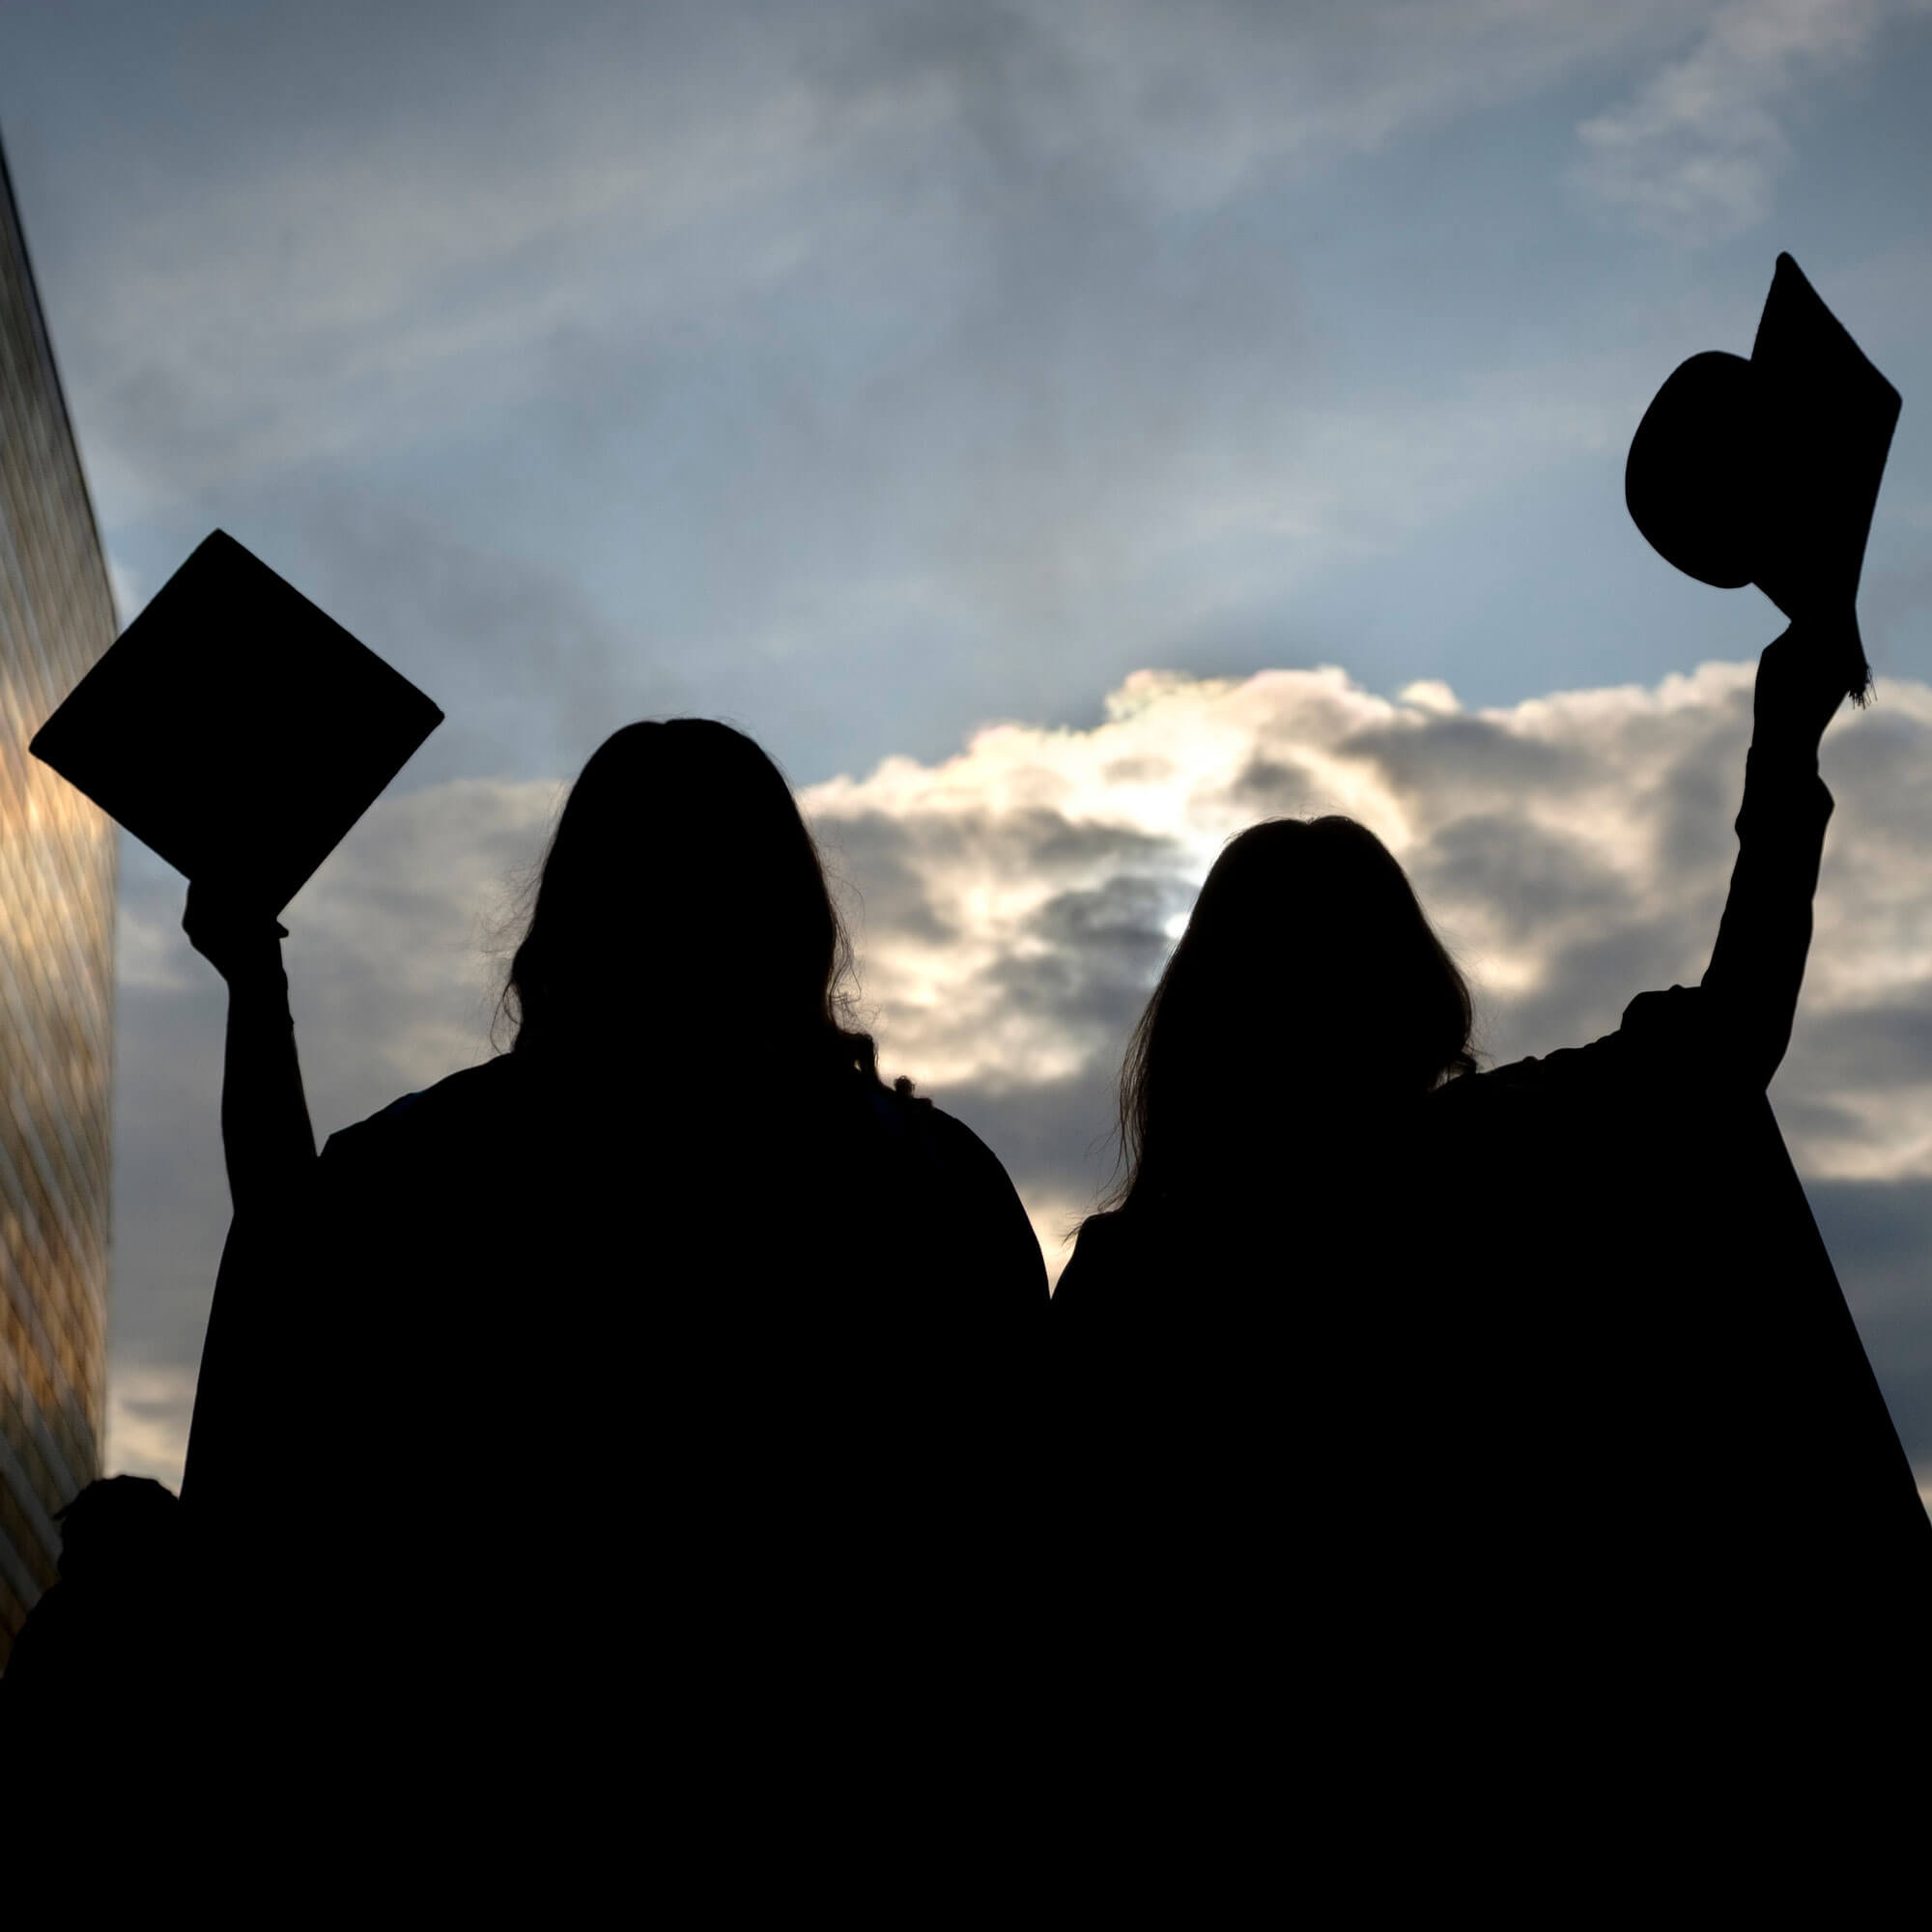 Silhouette of graduates raising mortar board hats in the air